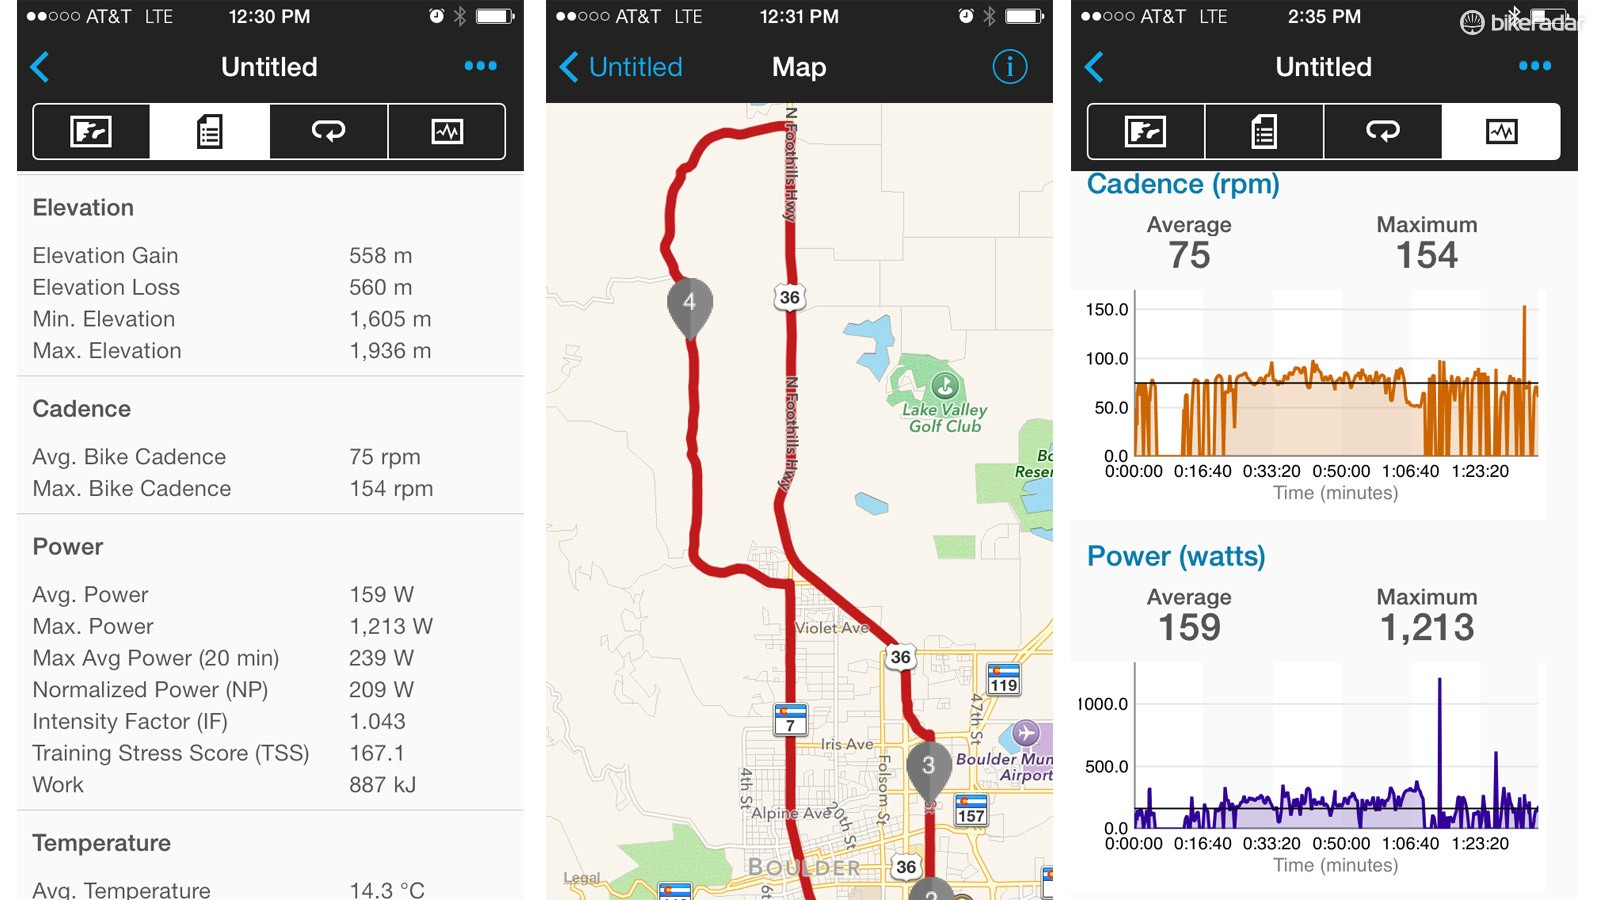 Garmin has recently improved its Garmin Connect software, shown here in the mobile version. Although it is neither as social as Strava, nor as analytical as TrainingPeaks, it is clearly trying to be a bit of both